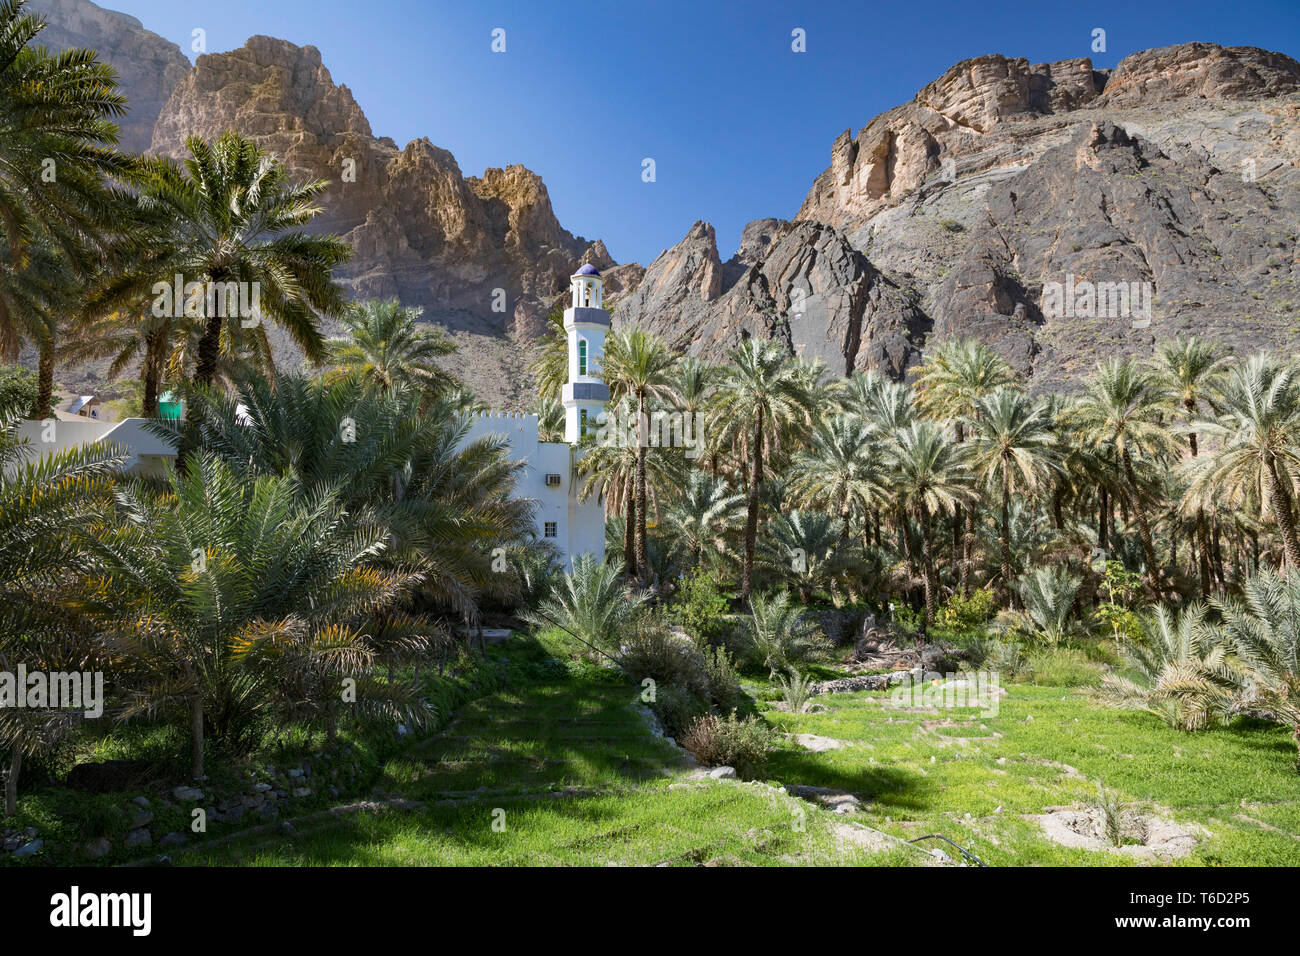 Oman, Dakhiliyah Governate, Jebel Hajar, Balad Sayt. A mosque in the remote village of Balat Sayt surrounded by green terraces and palm trees Stock Photo